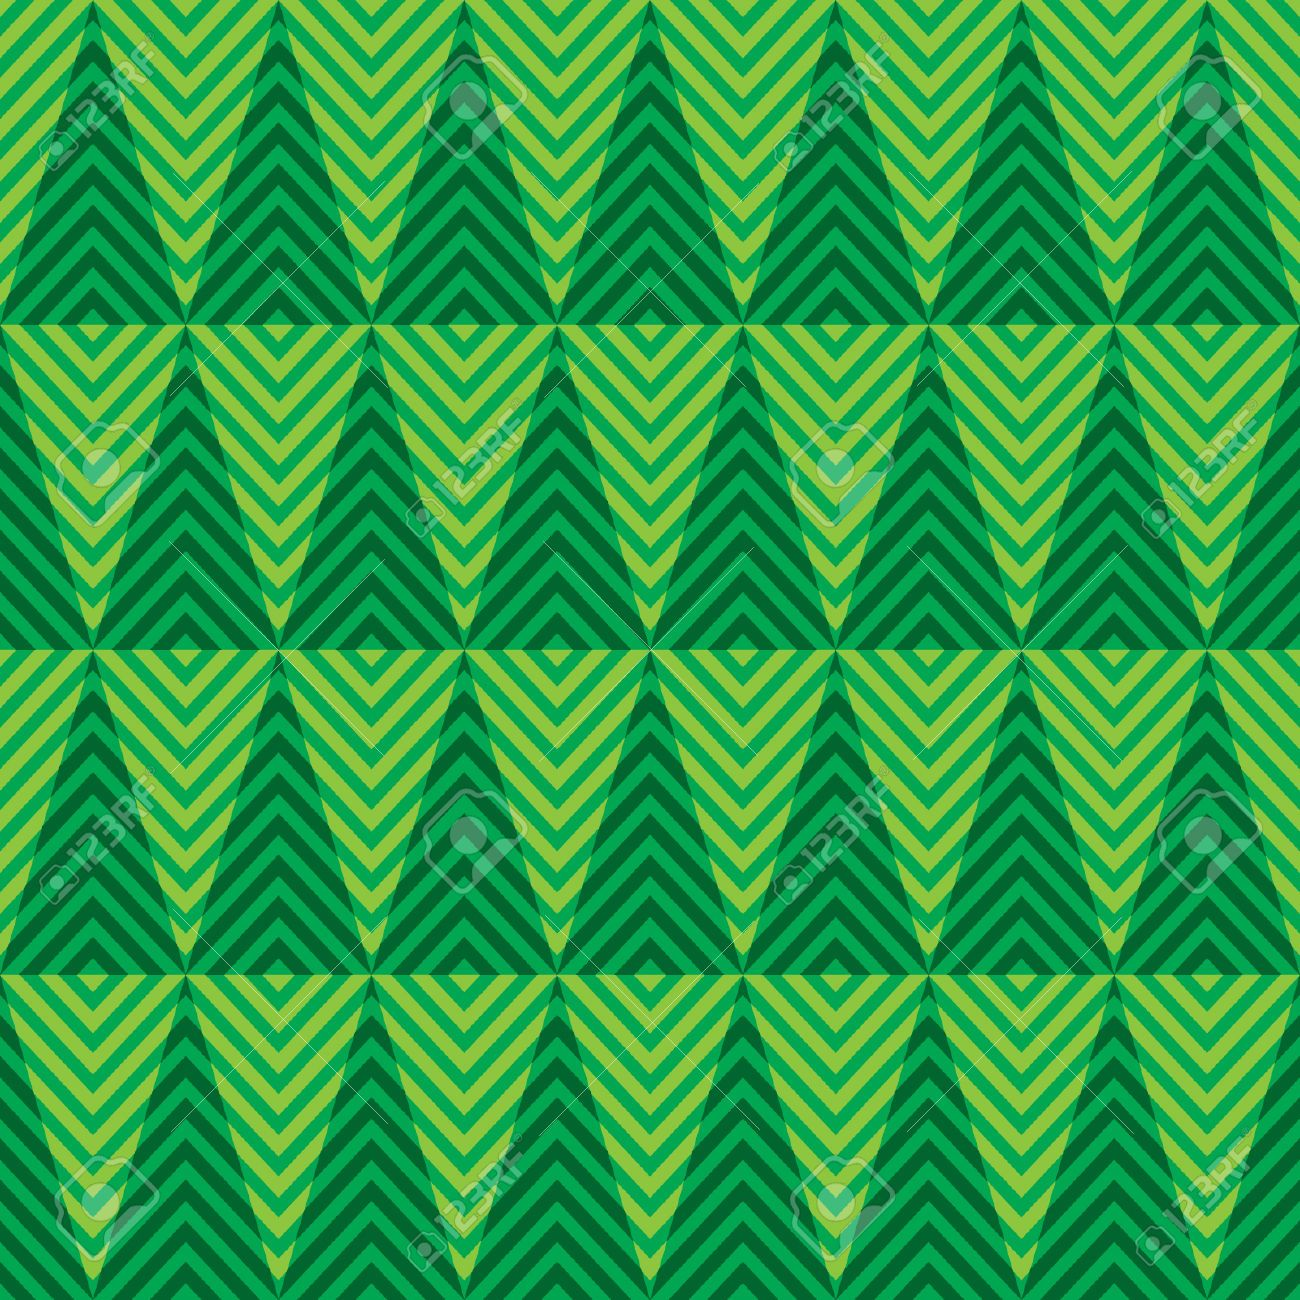 1300x1300 Seamless Festive Christmas Gift Wrapping Paper Pattern Texture ...